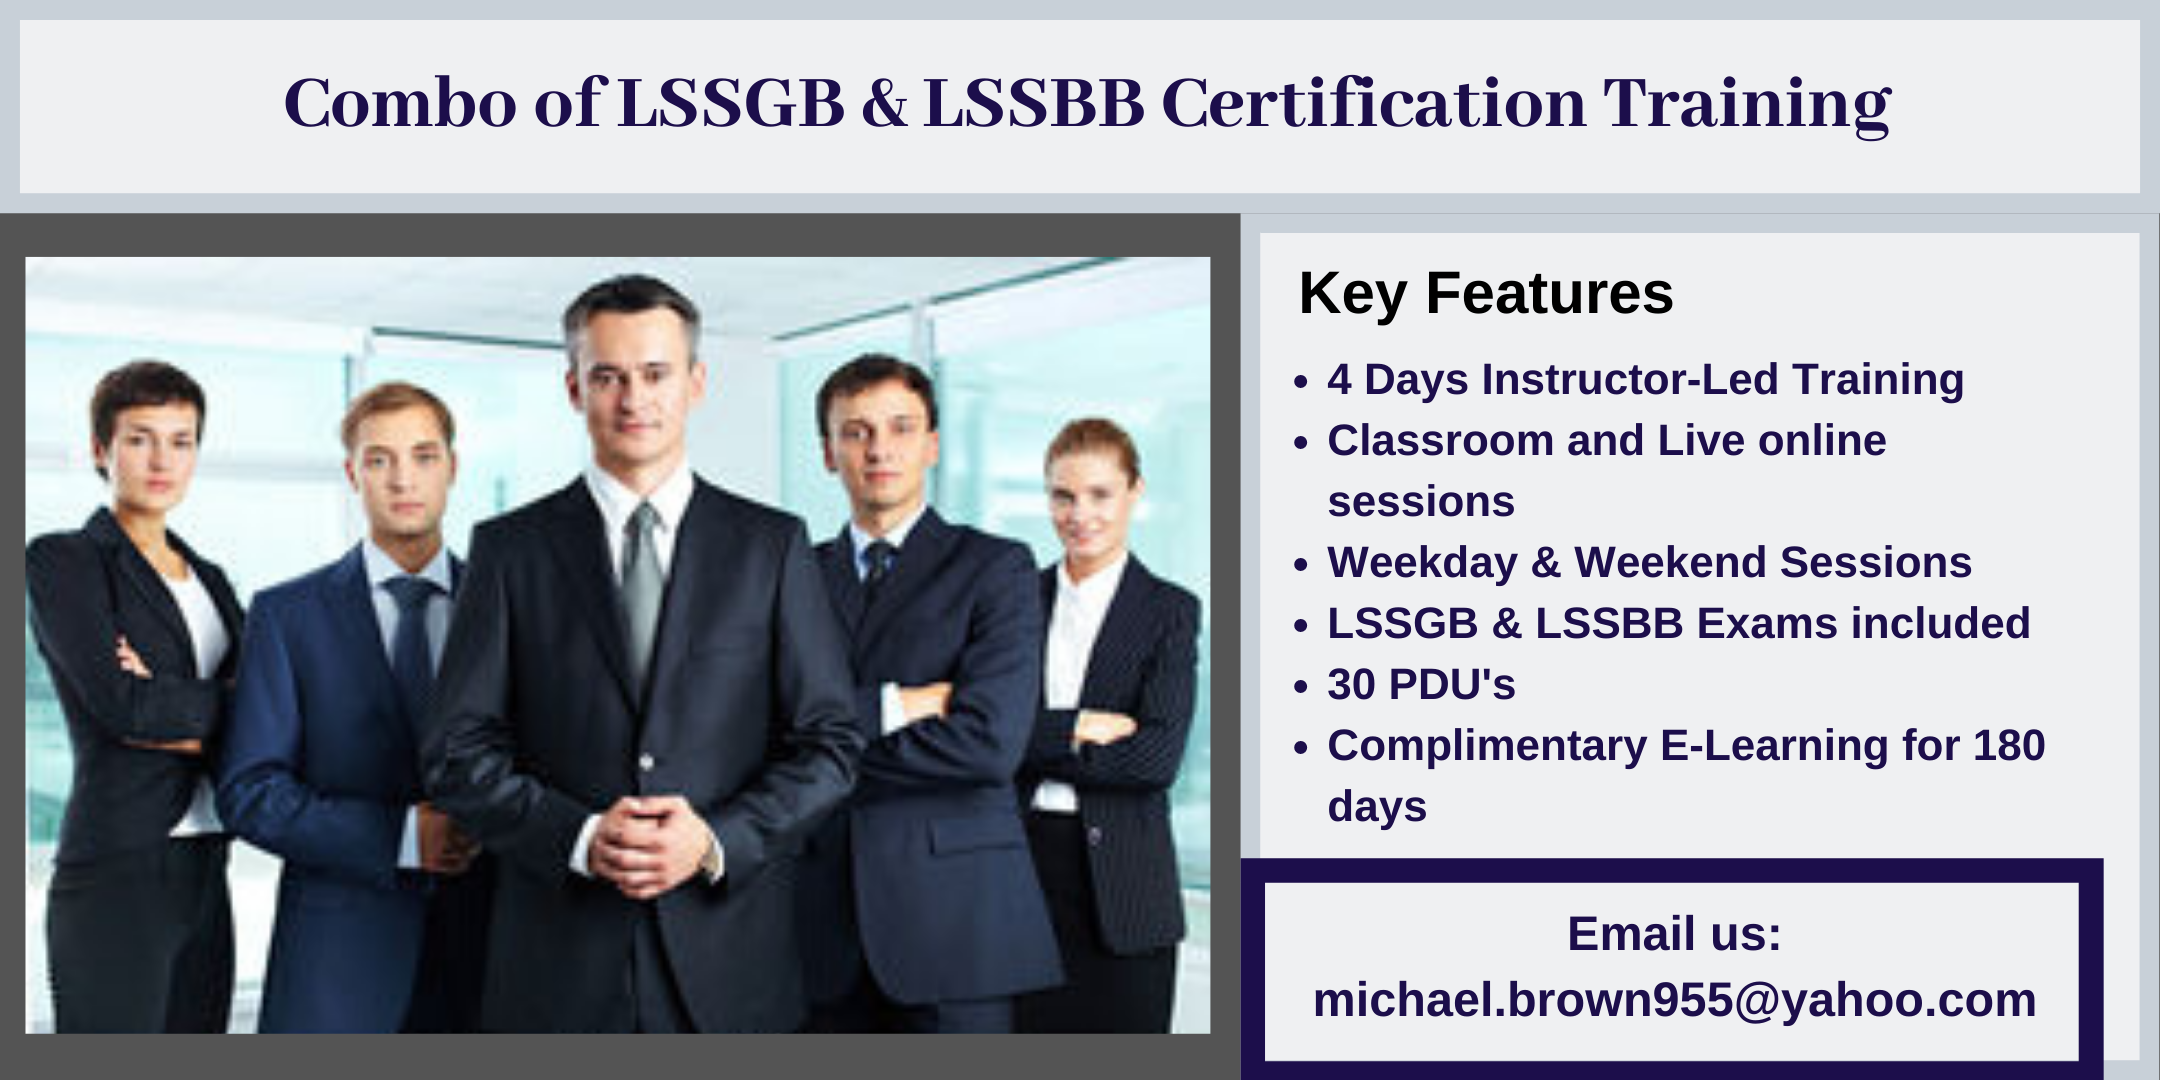 Combo of LSSGB & LSSBB 4 days Certification Training in Friendswood, TX